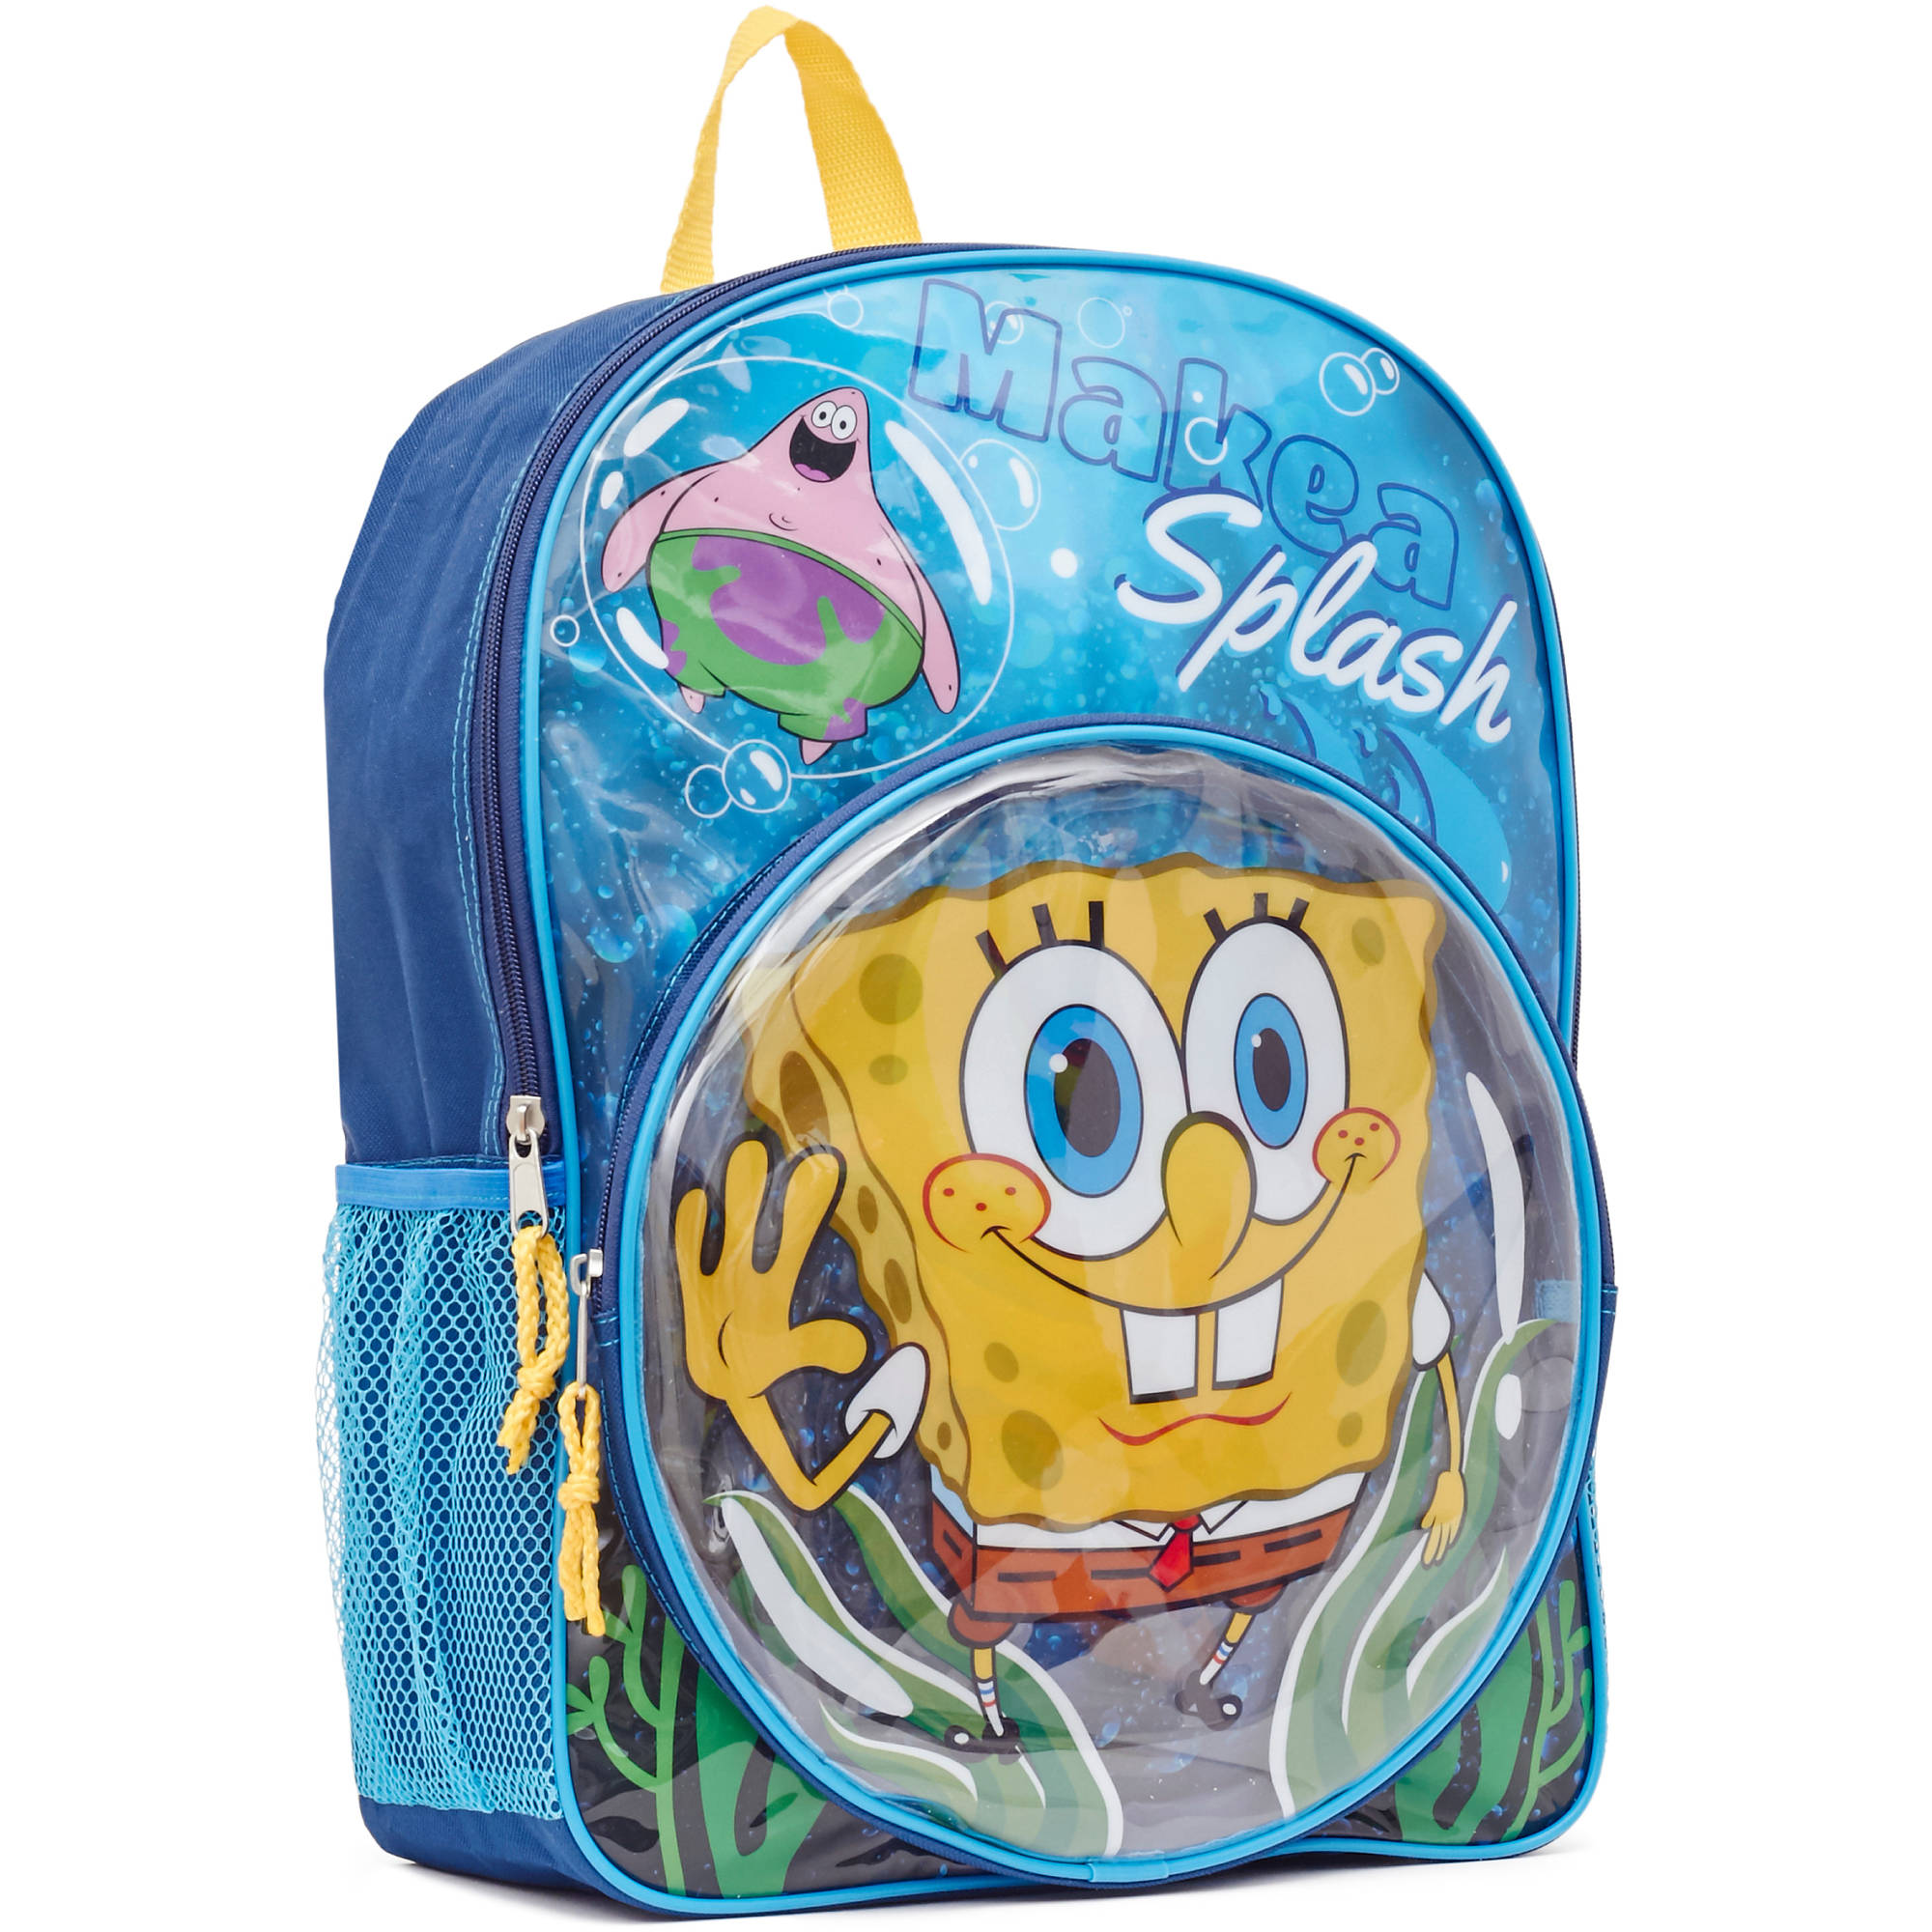 Sponge Bob Backpack